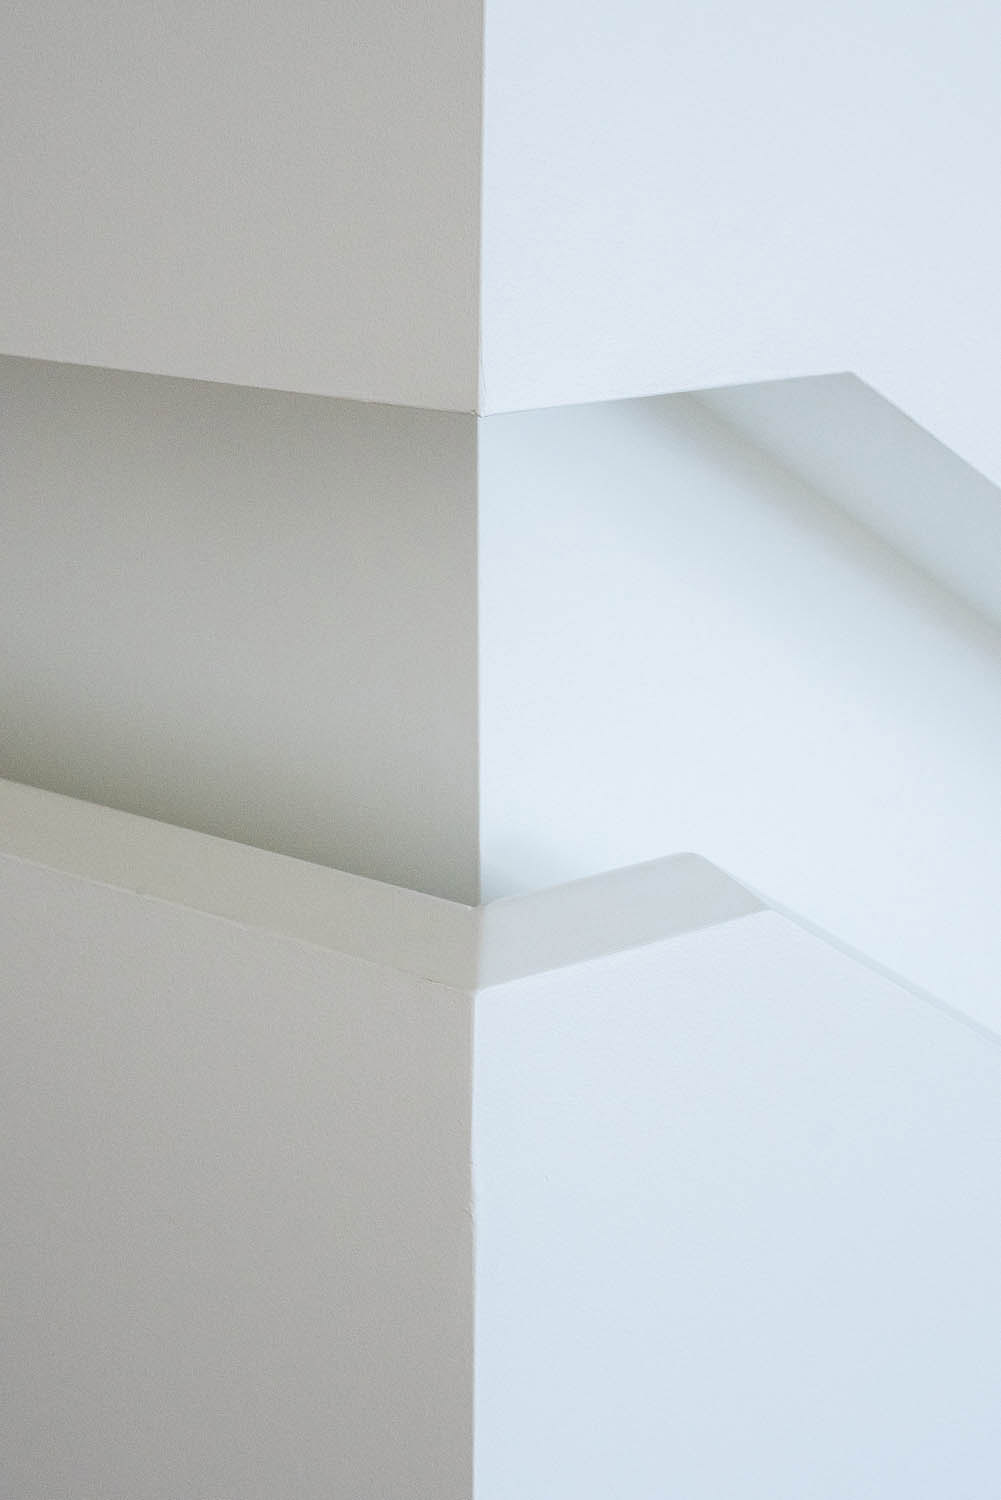 The Polygon Gallery, interior detail - photo by Jeff Hamada